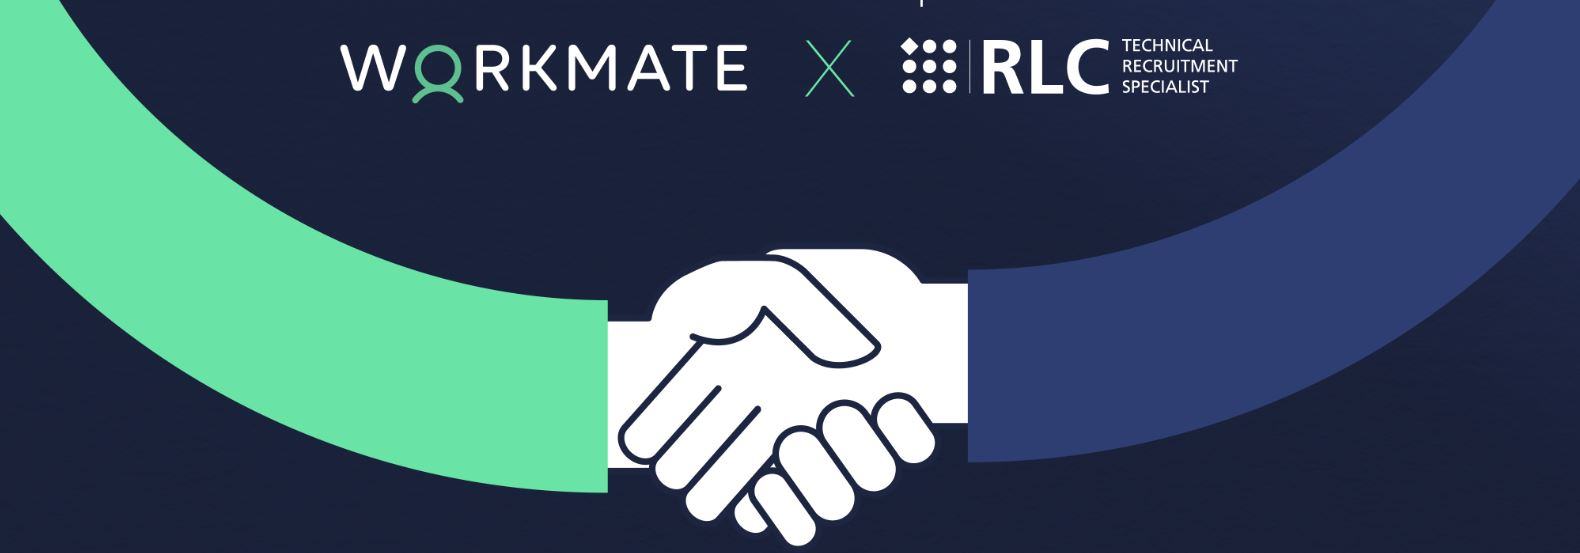 RLC and Workmate partnership announcement